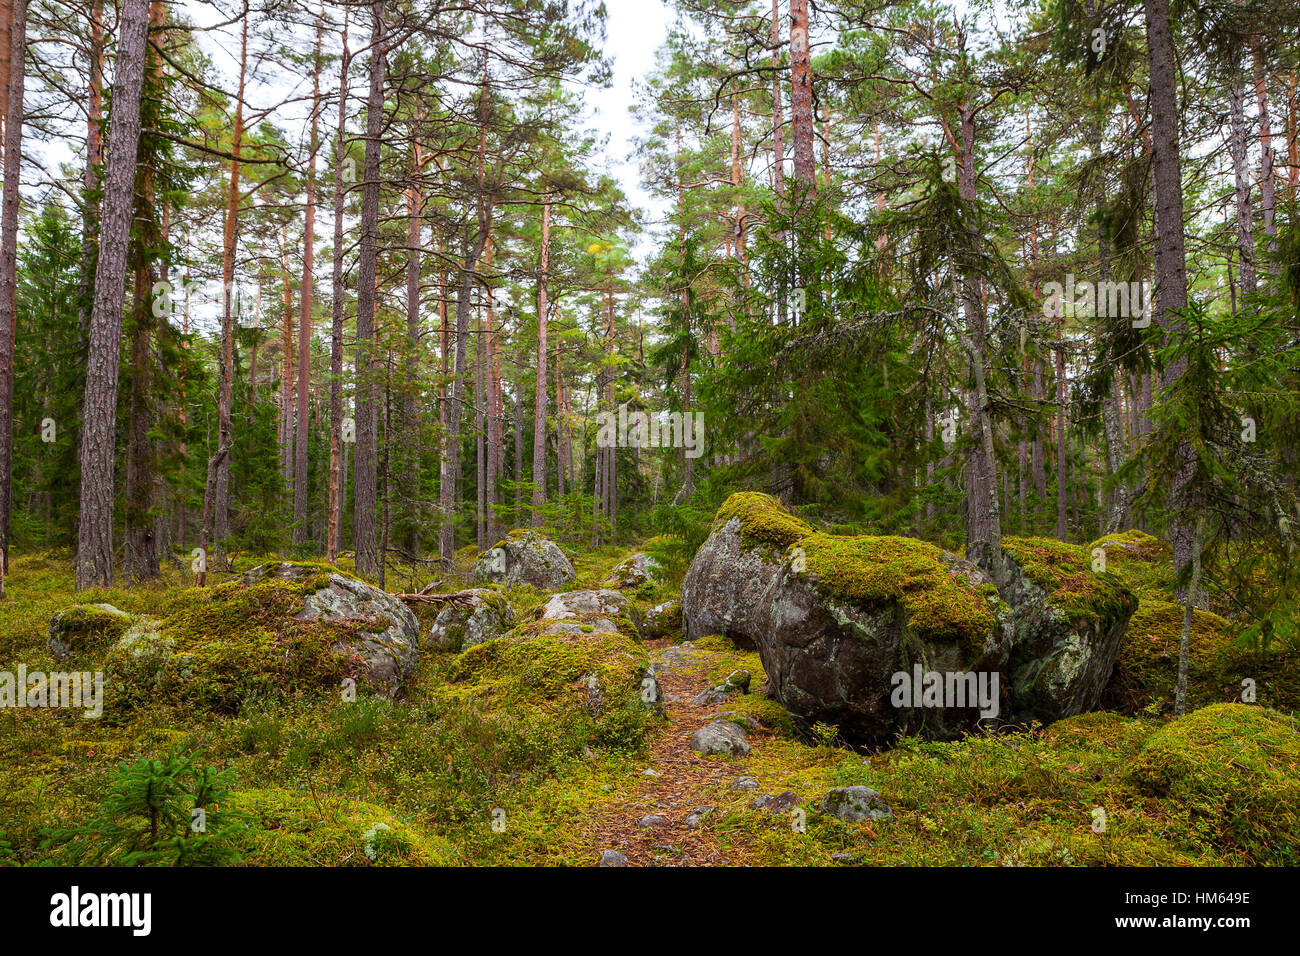 Pine forest with moss covered rocks lahemaa national park estonia